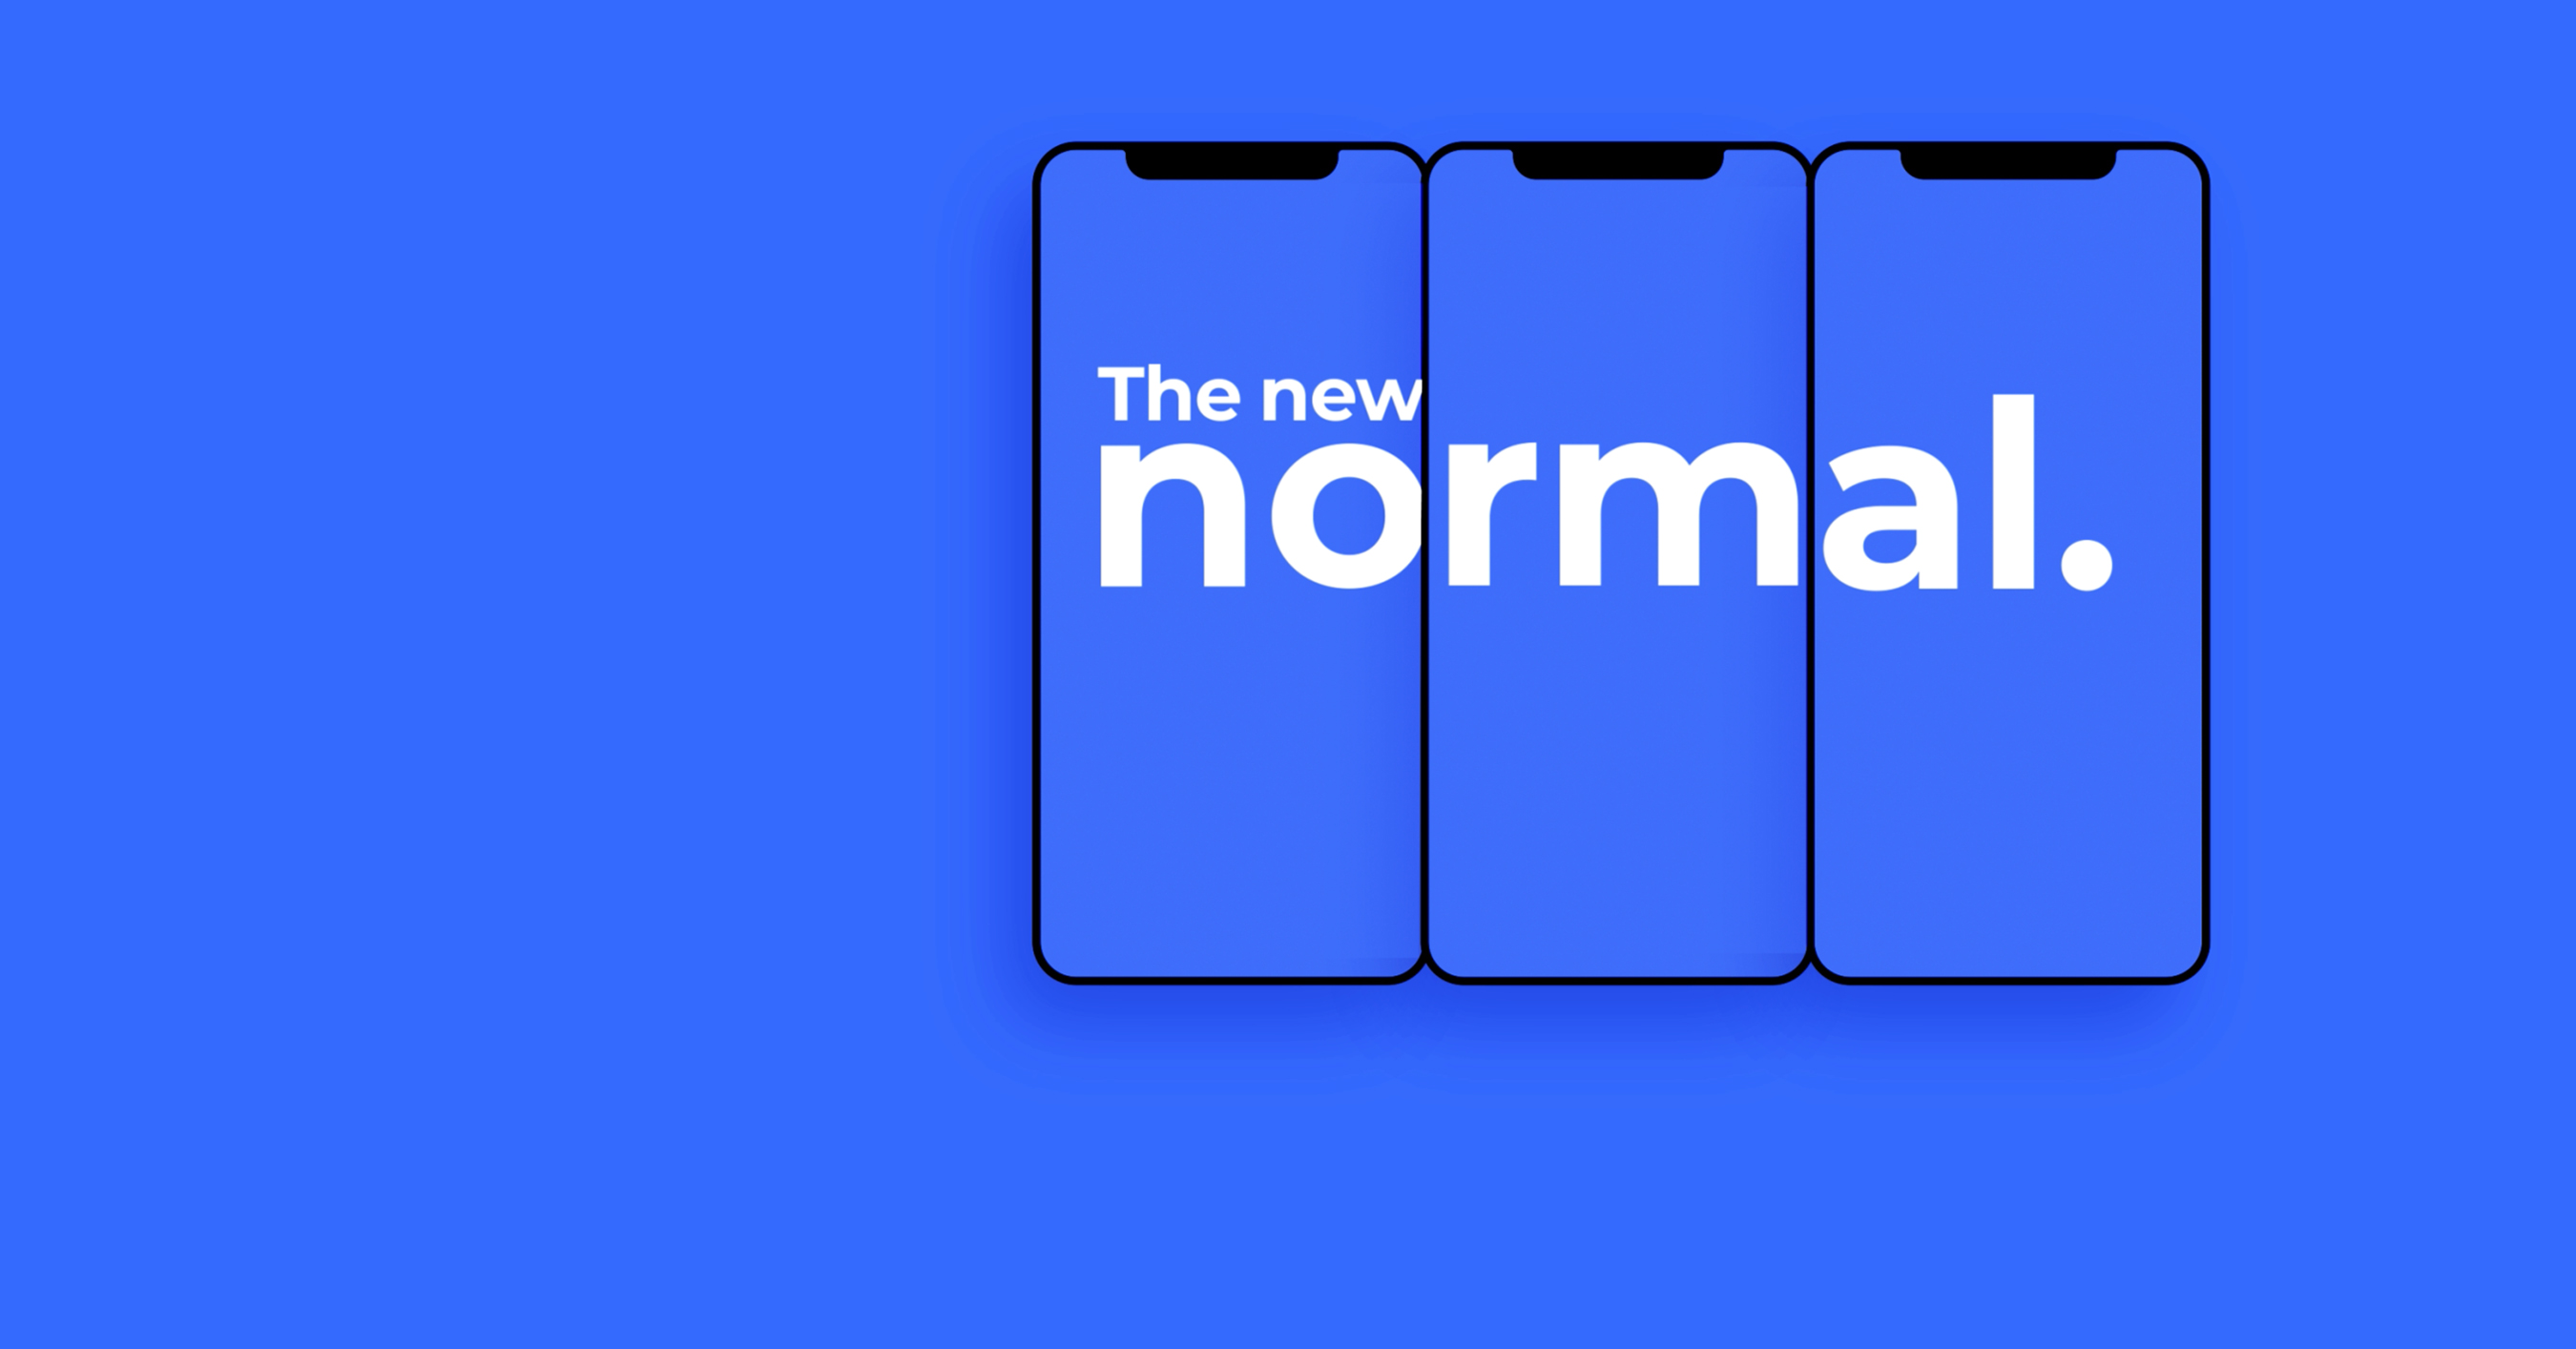 3 Strategies For Adapting Your Business To The New Normal